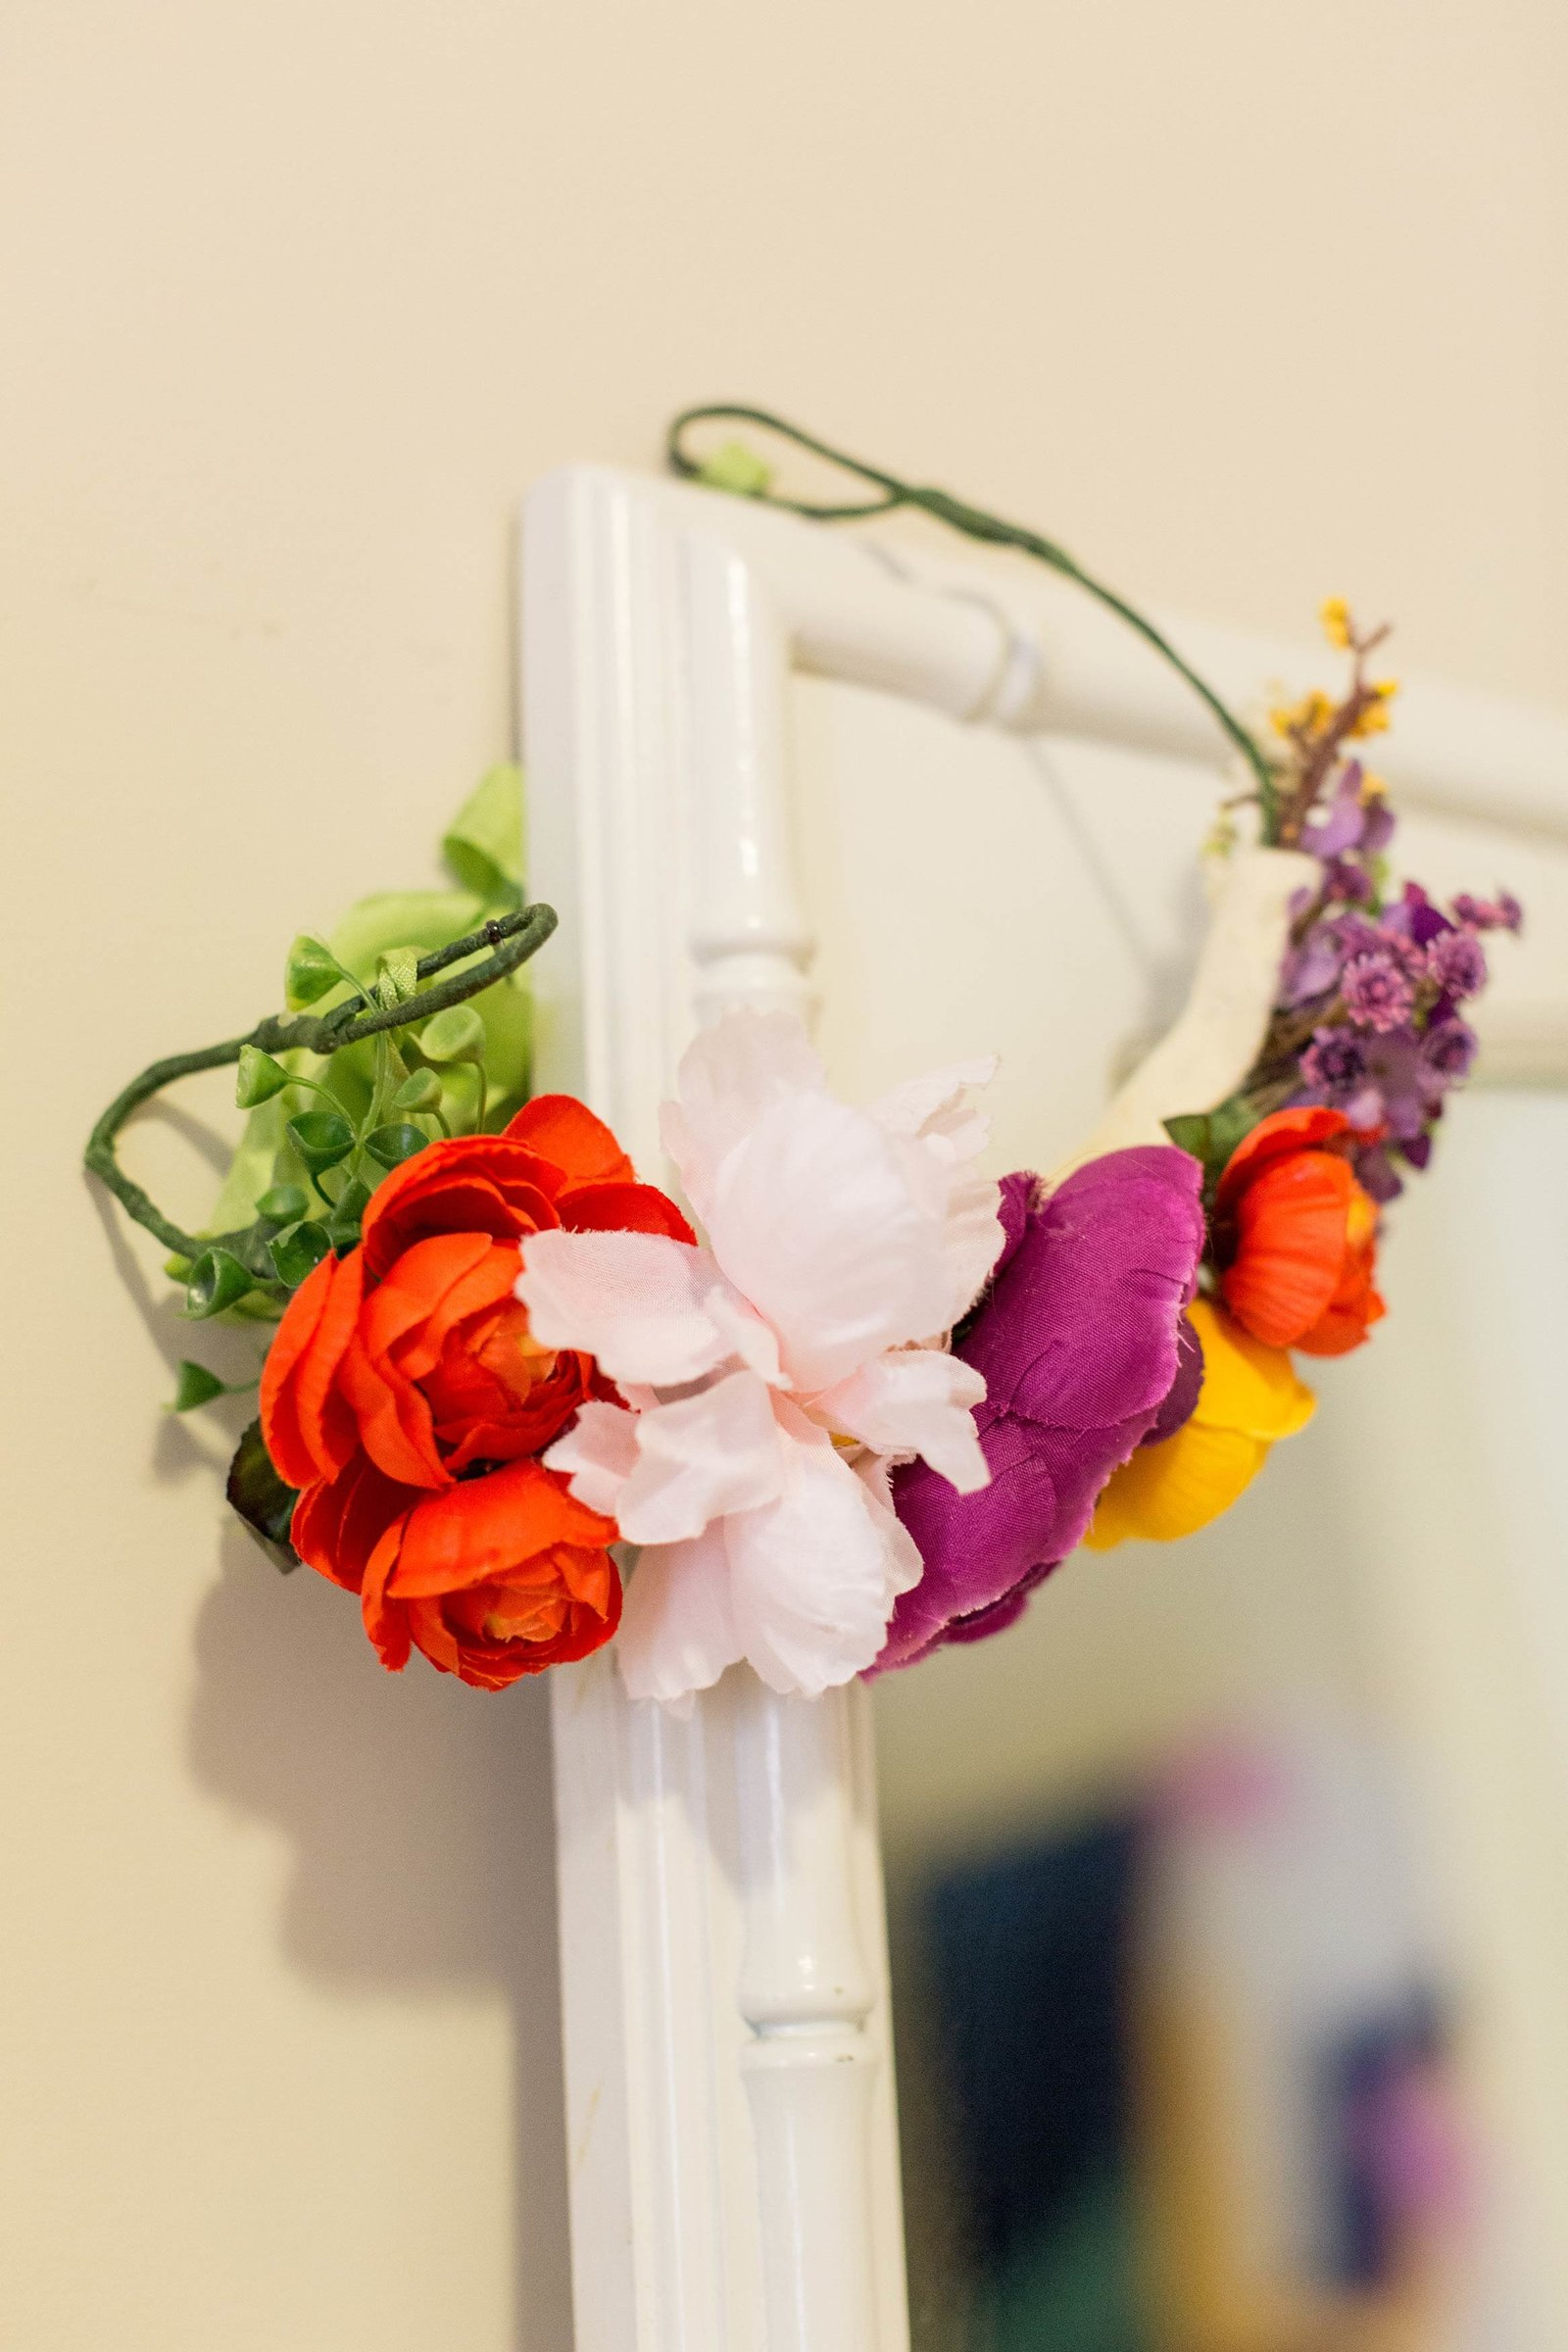 A bright flower crown hangs on the corner of a mirror.